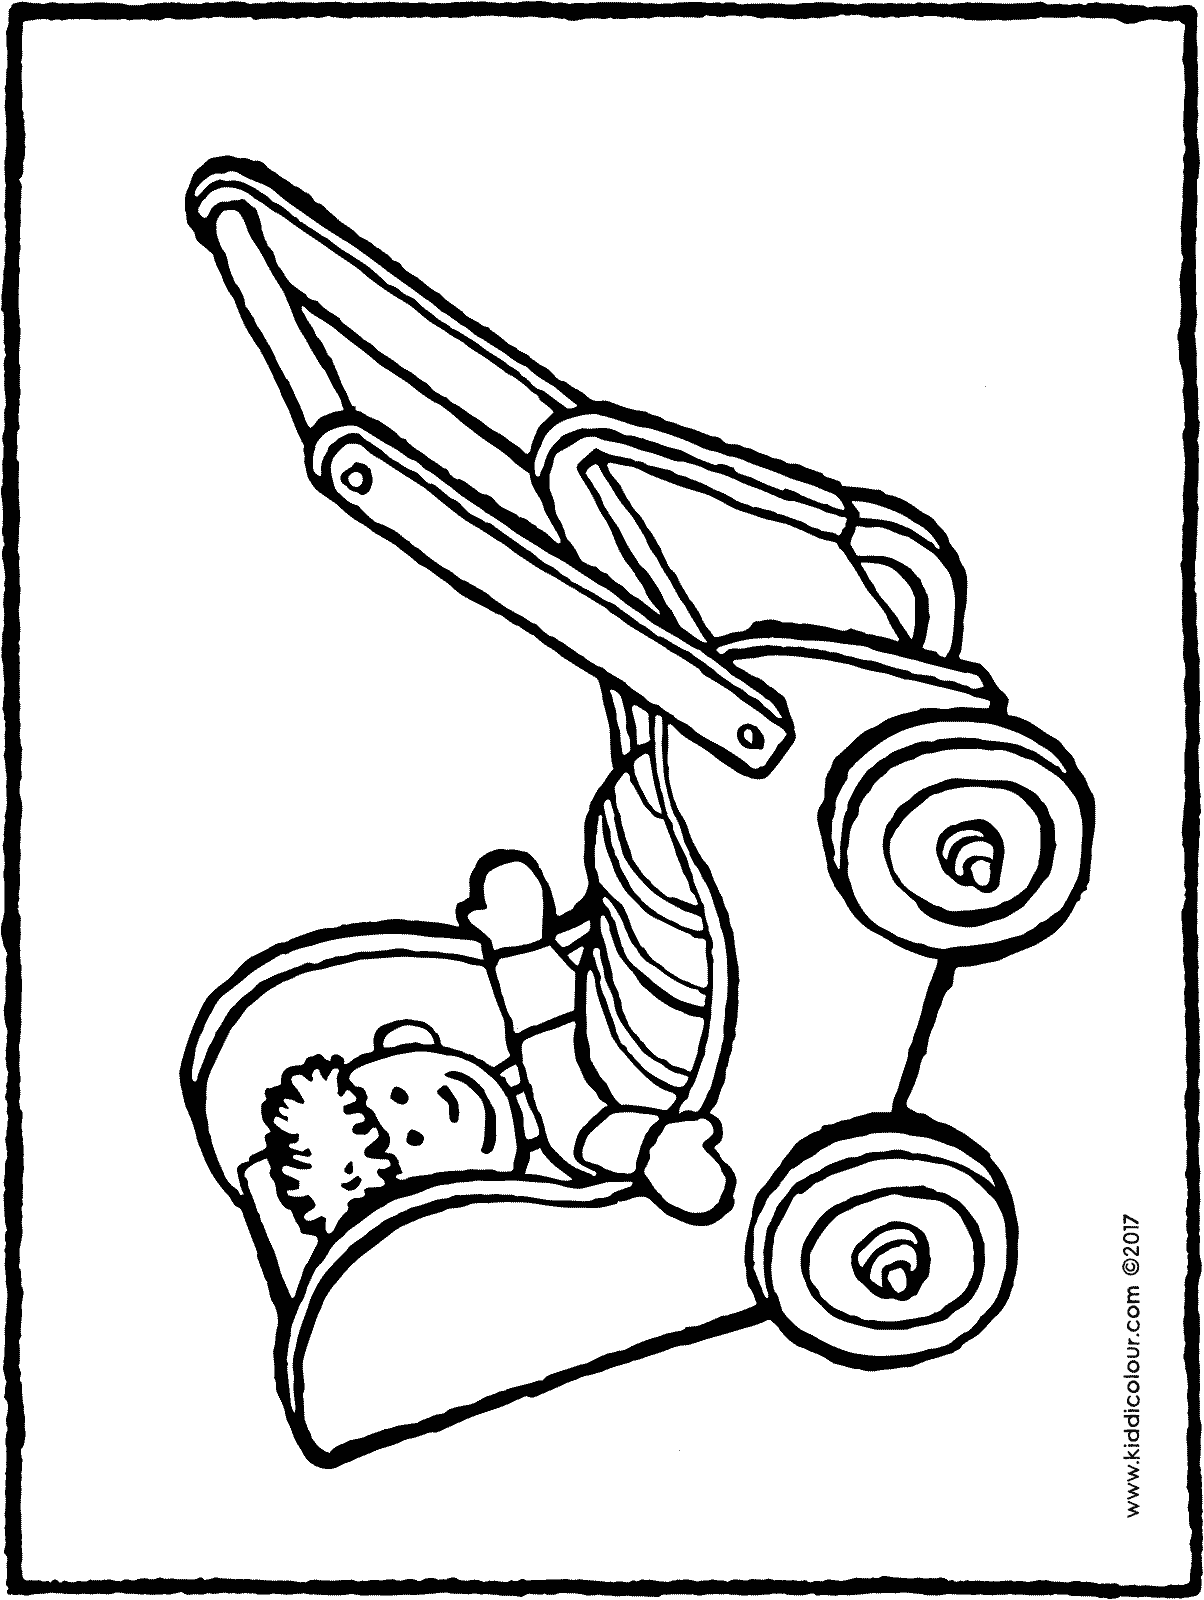 doll's pram colouring page drawing picture 01H